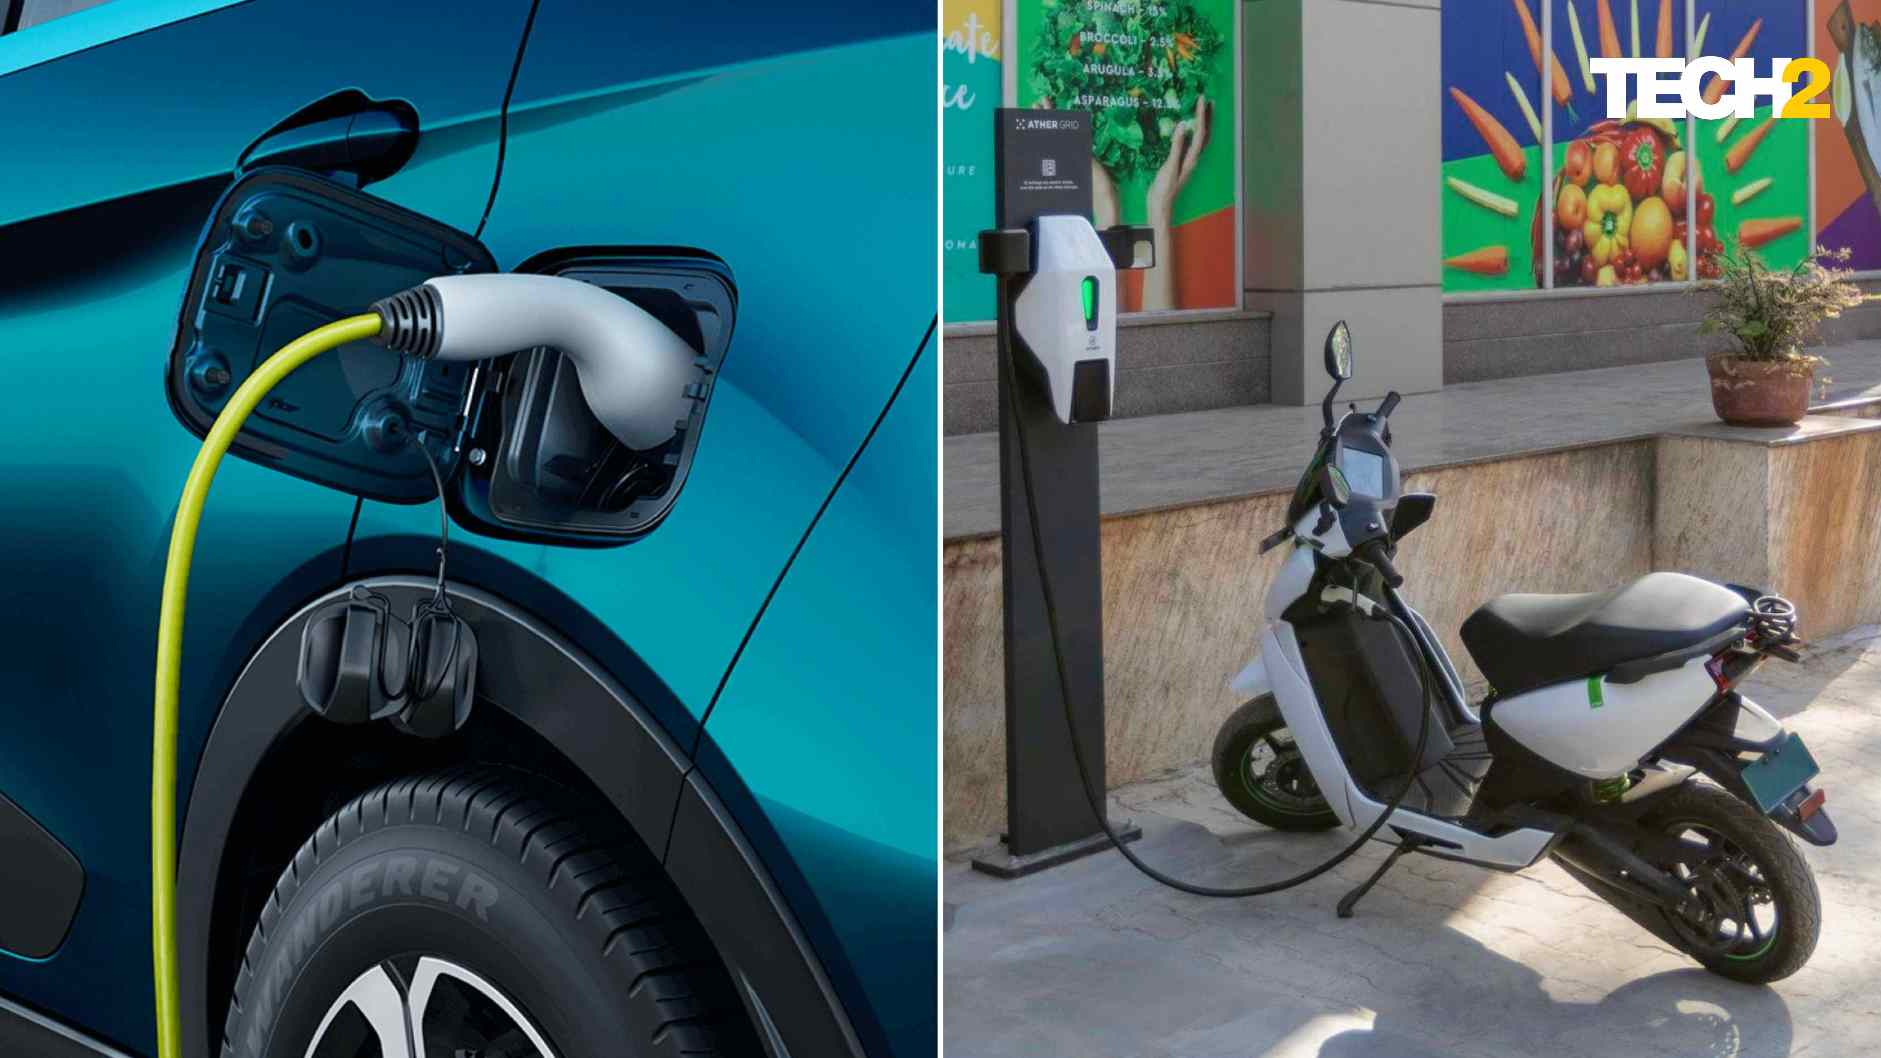 Grant rose, electric car prices fell sharply - Technology News, Firstpost